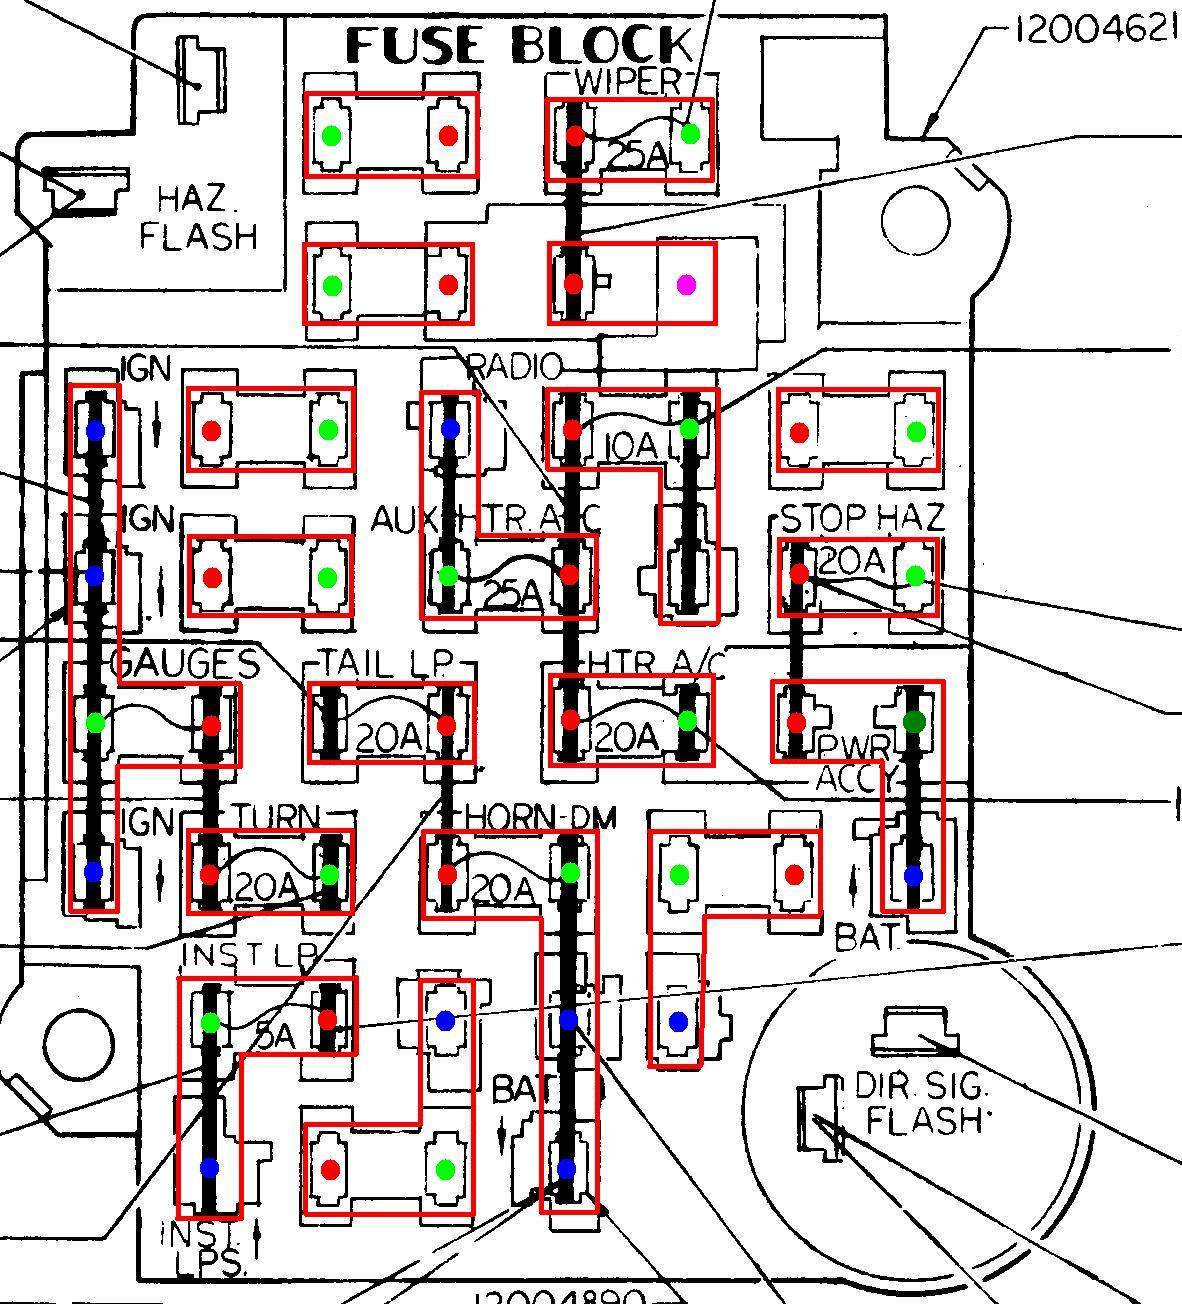 hight resolution of 86 pontiac fuse box experts of wiring diagram u2022 rh evilcloud co uk 2005 pontiac grand